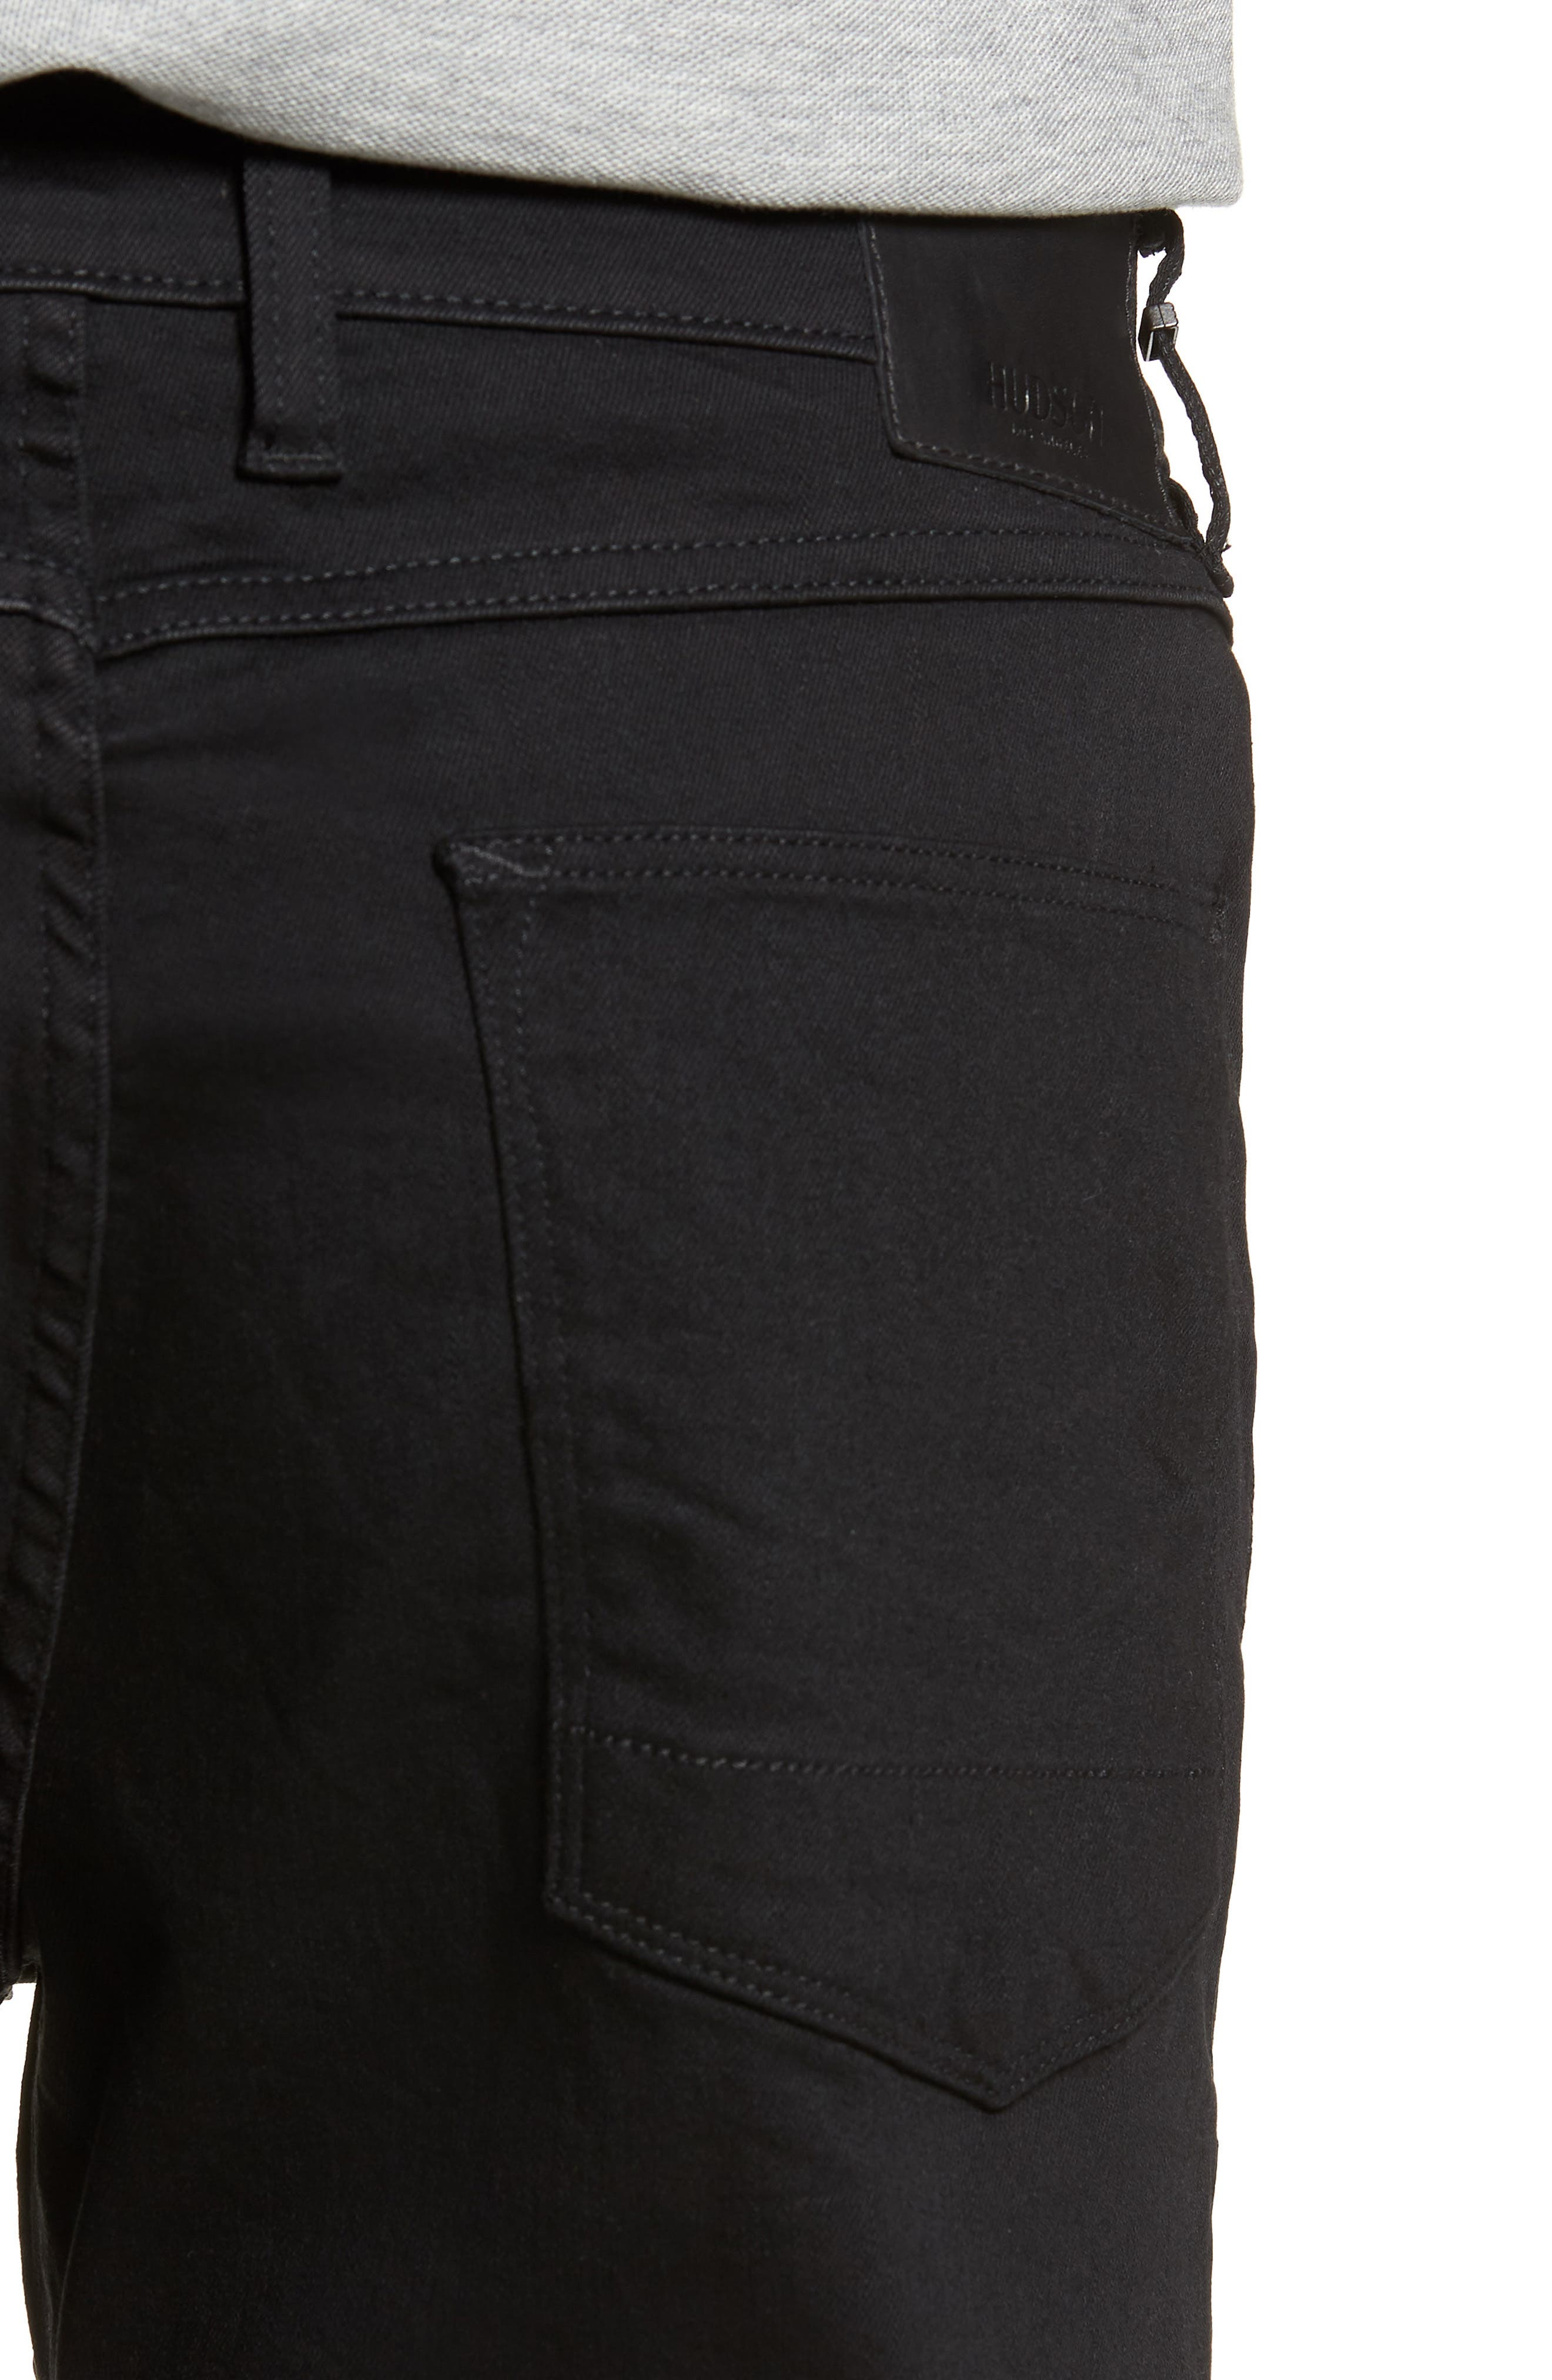 Sartor Slouchy Skinny Fit Jeans,                             Alternate thumbnail 4, color,                             001